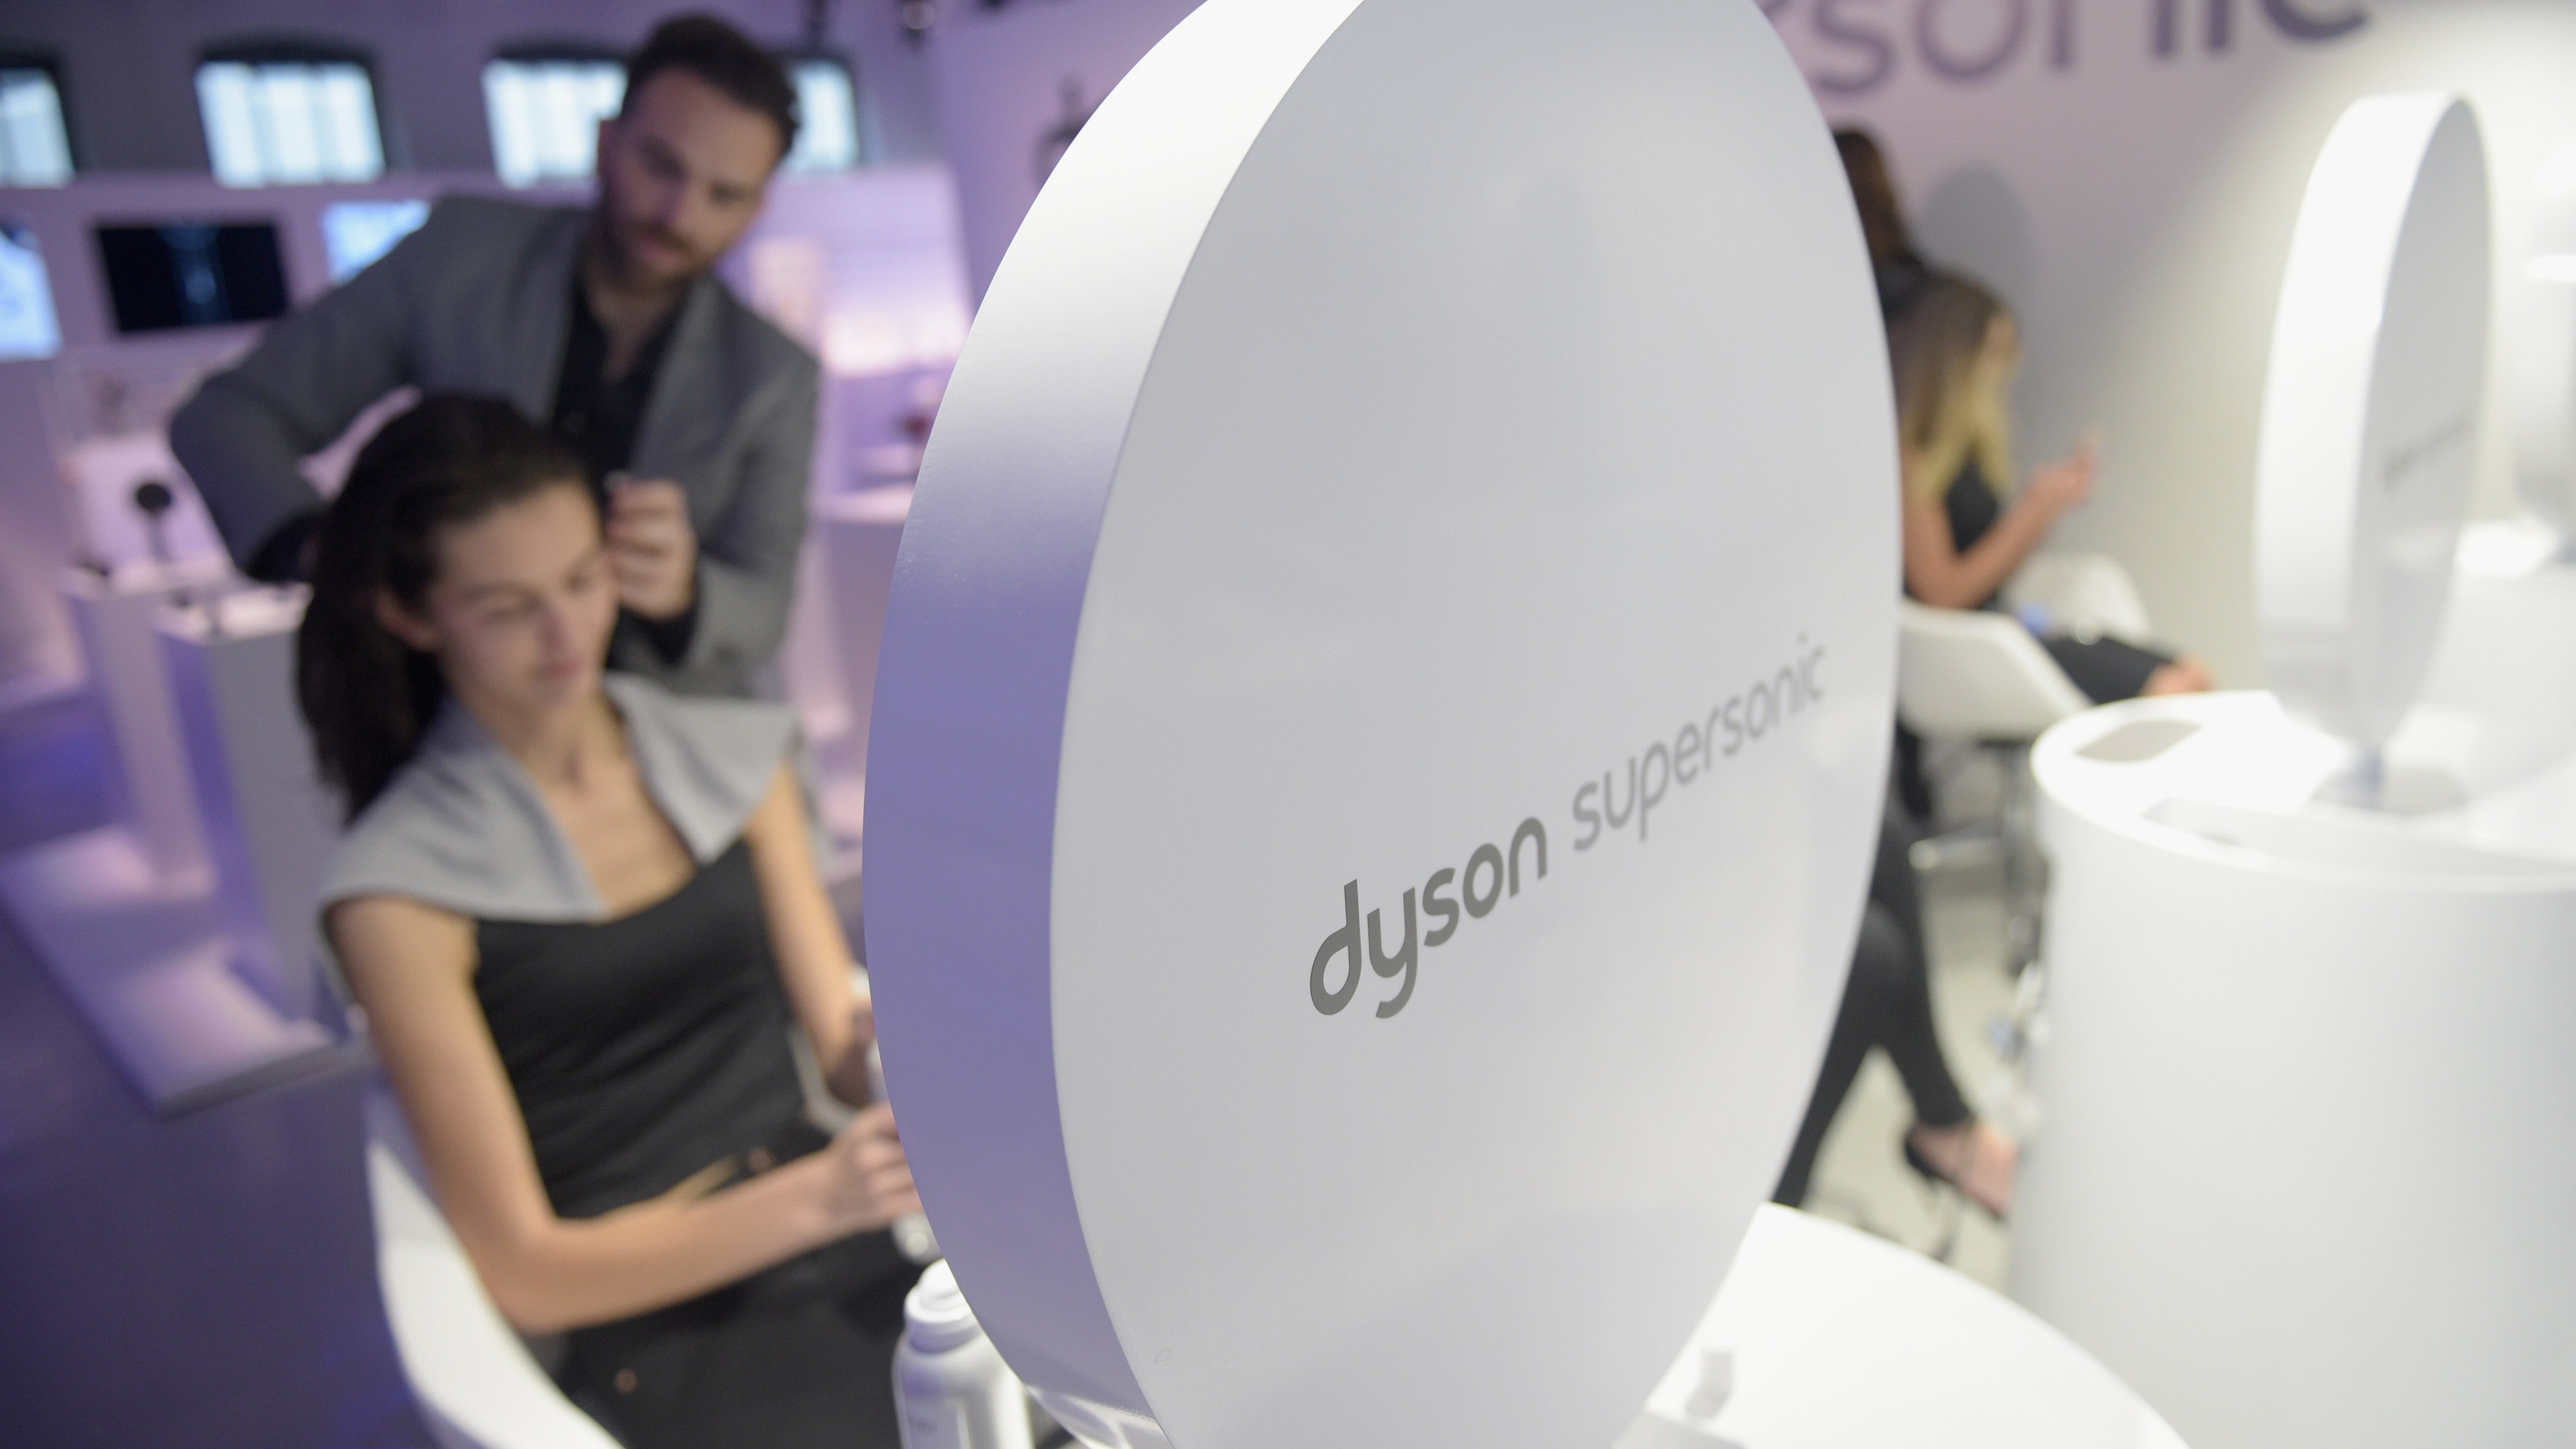 Dyson Says It Will Ship 15,000 Custom Ventilators To Aid In Covid-19 Pandemic